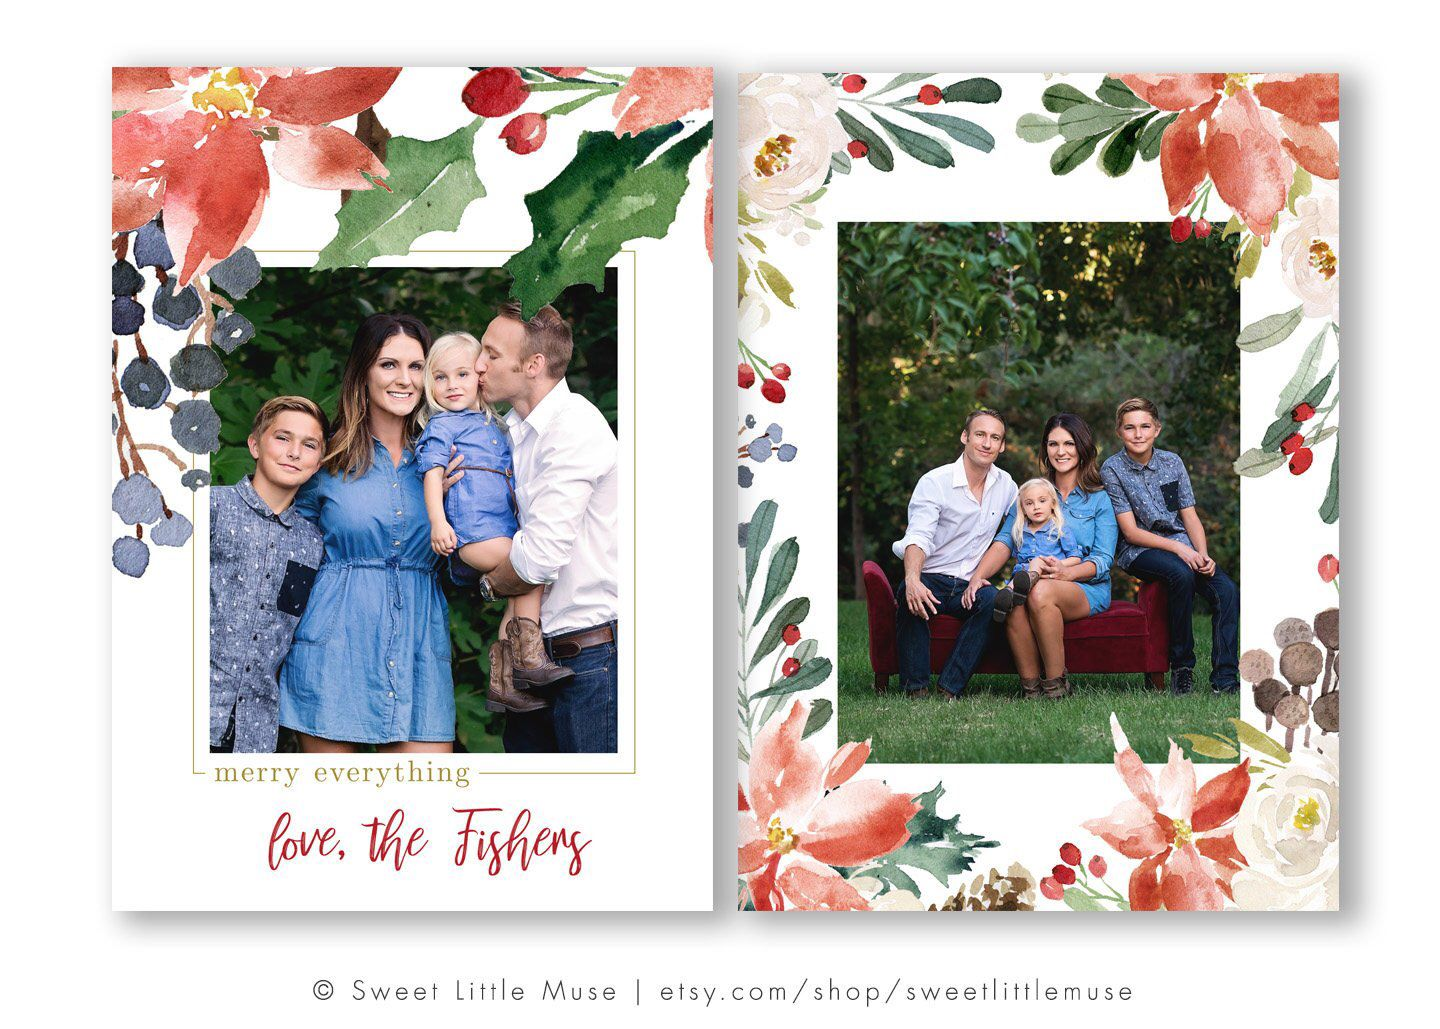 Watercolor Christmas Card Template Holiday Card Template For Etsy In 2021 Christmas Card Template Holiday Card Template Watercolor Christmas Cards